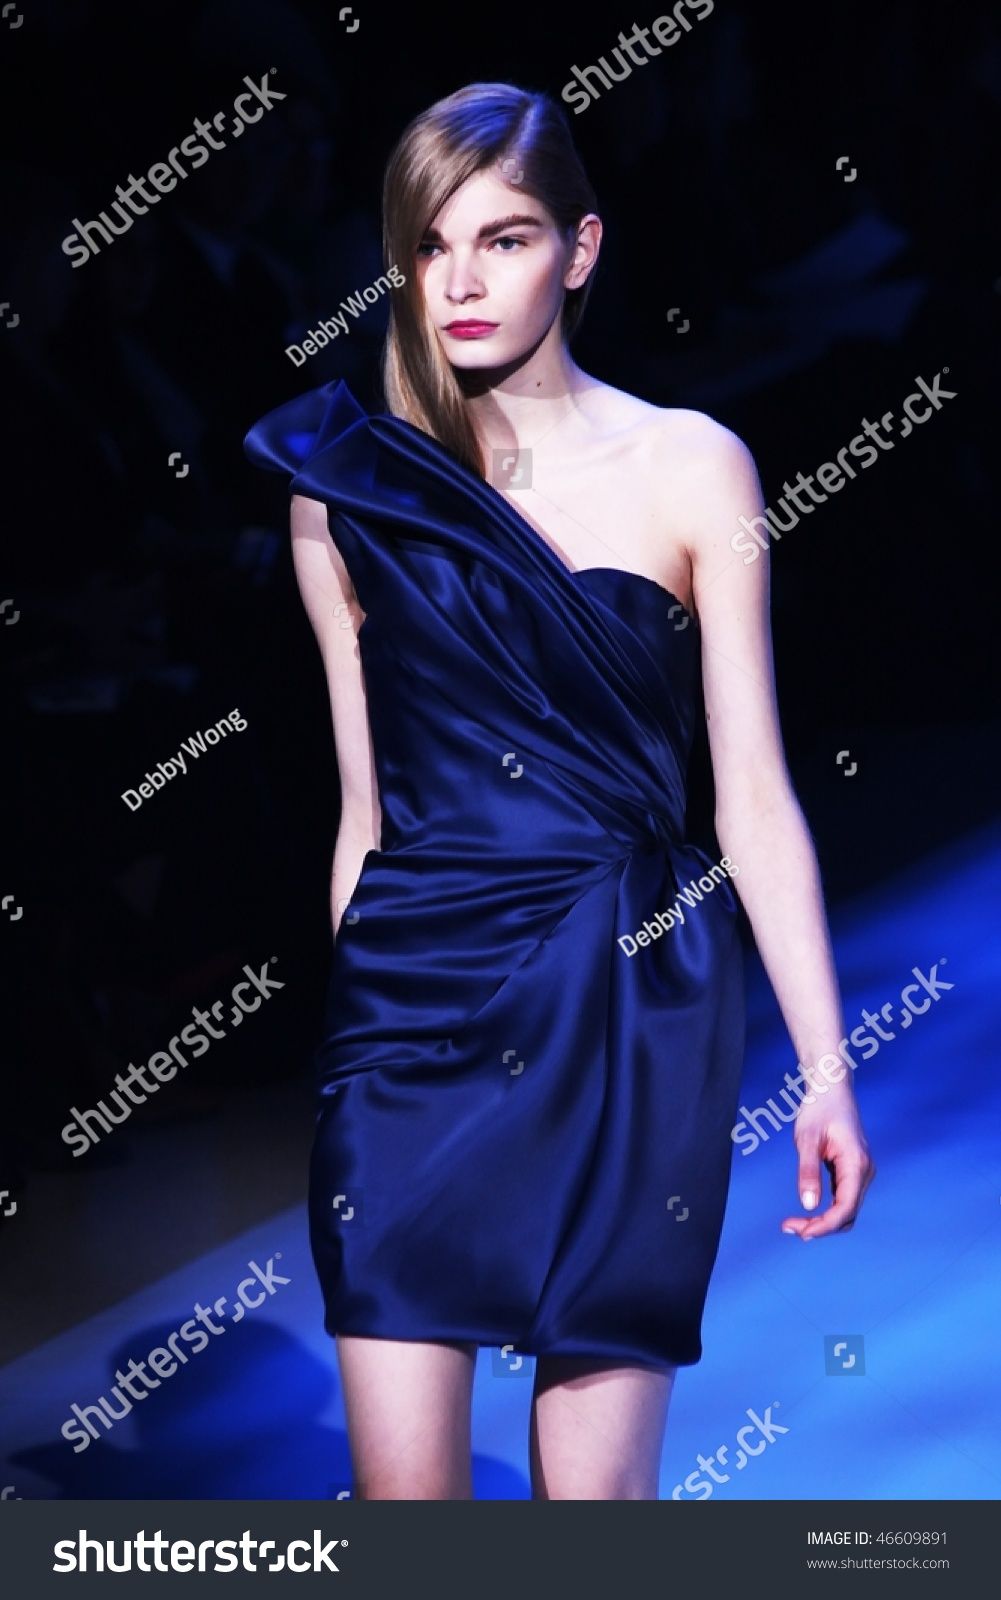 New yorkfebruary 12 mercedesbenz fashion week stock photo for Mercedes benz new york fashion week